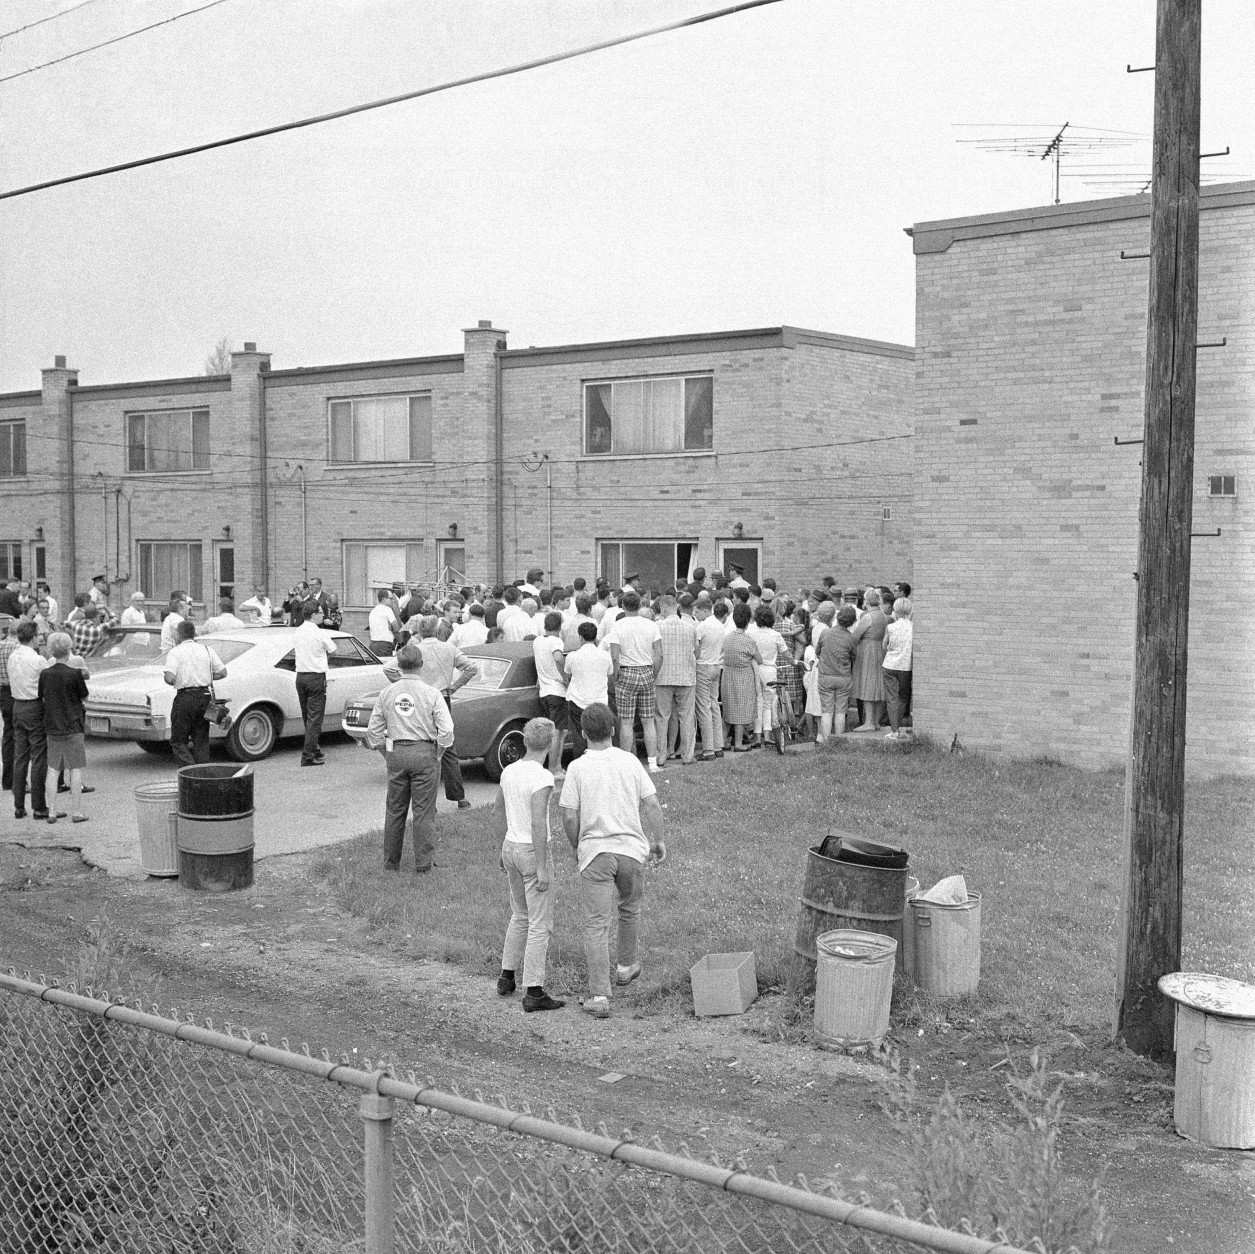 Scene outside the town house dormitory on Chicago's South Side, July 14, 1966 where eight student nurses were found slain. (AP Photo)